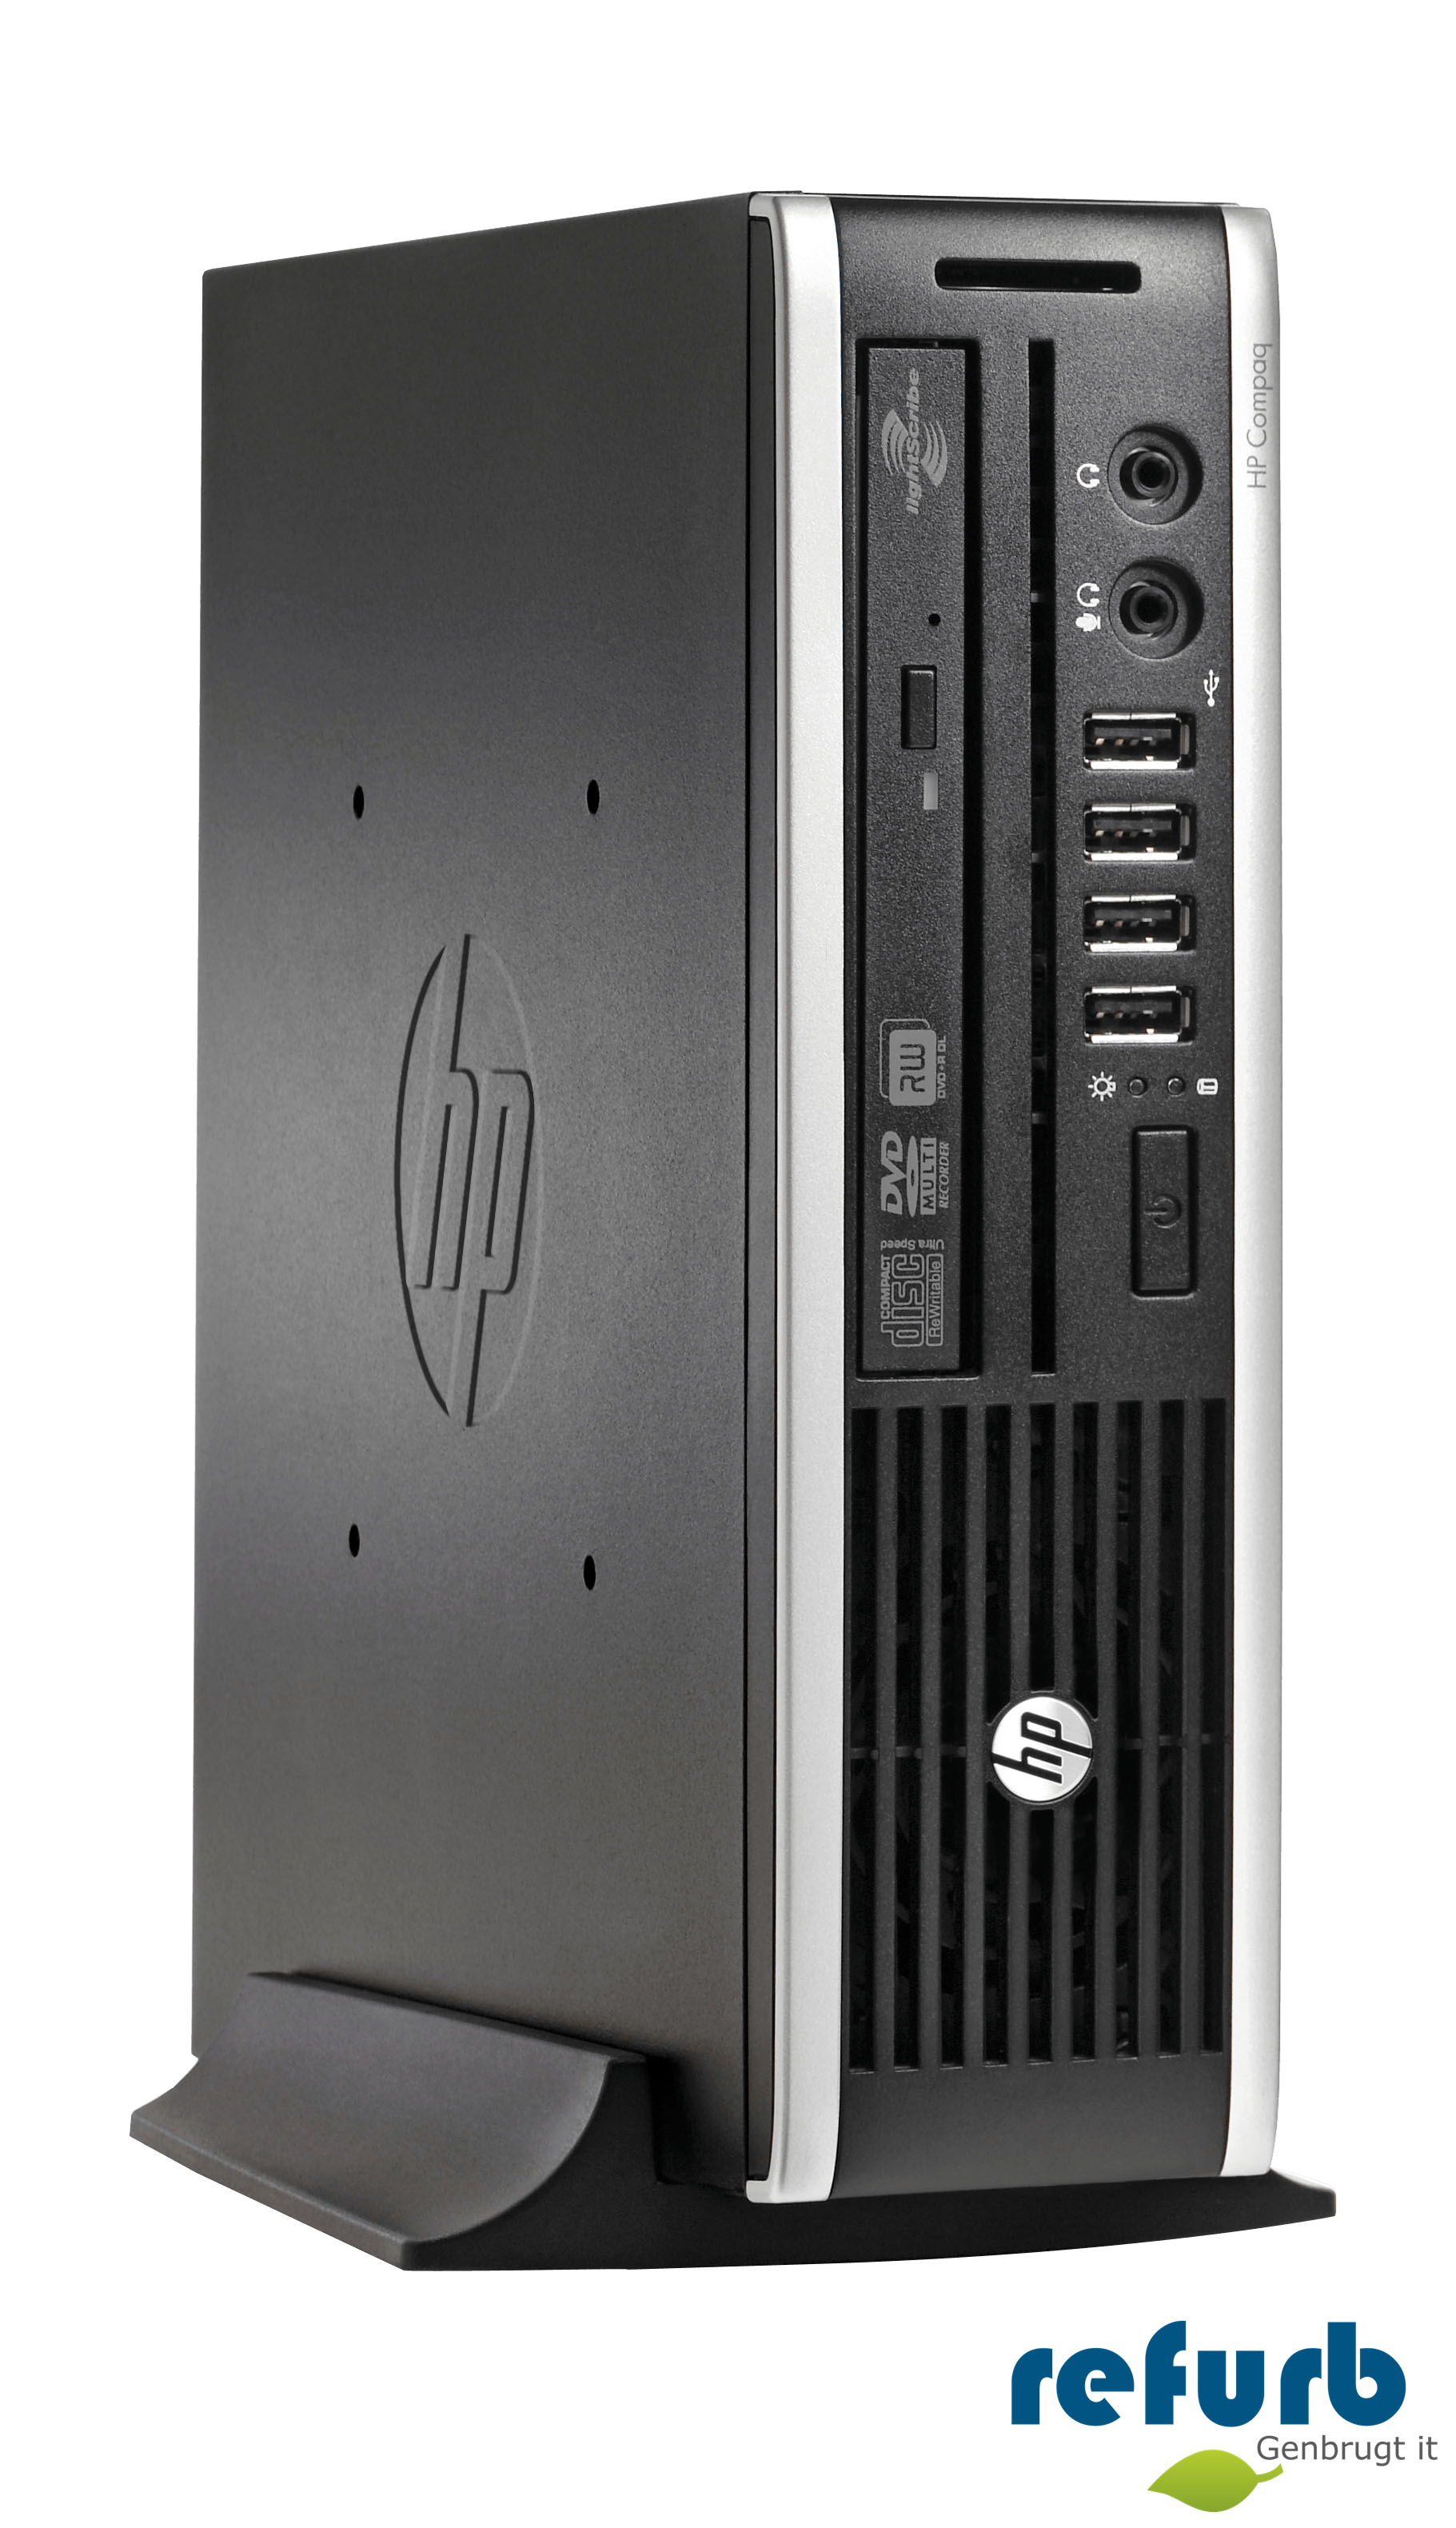 Hp compaq 8200 elite usdt fra Hp fra refurb